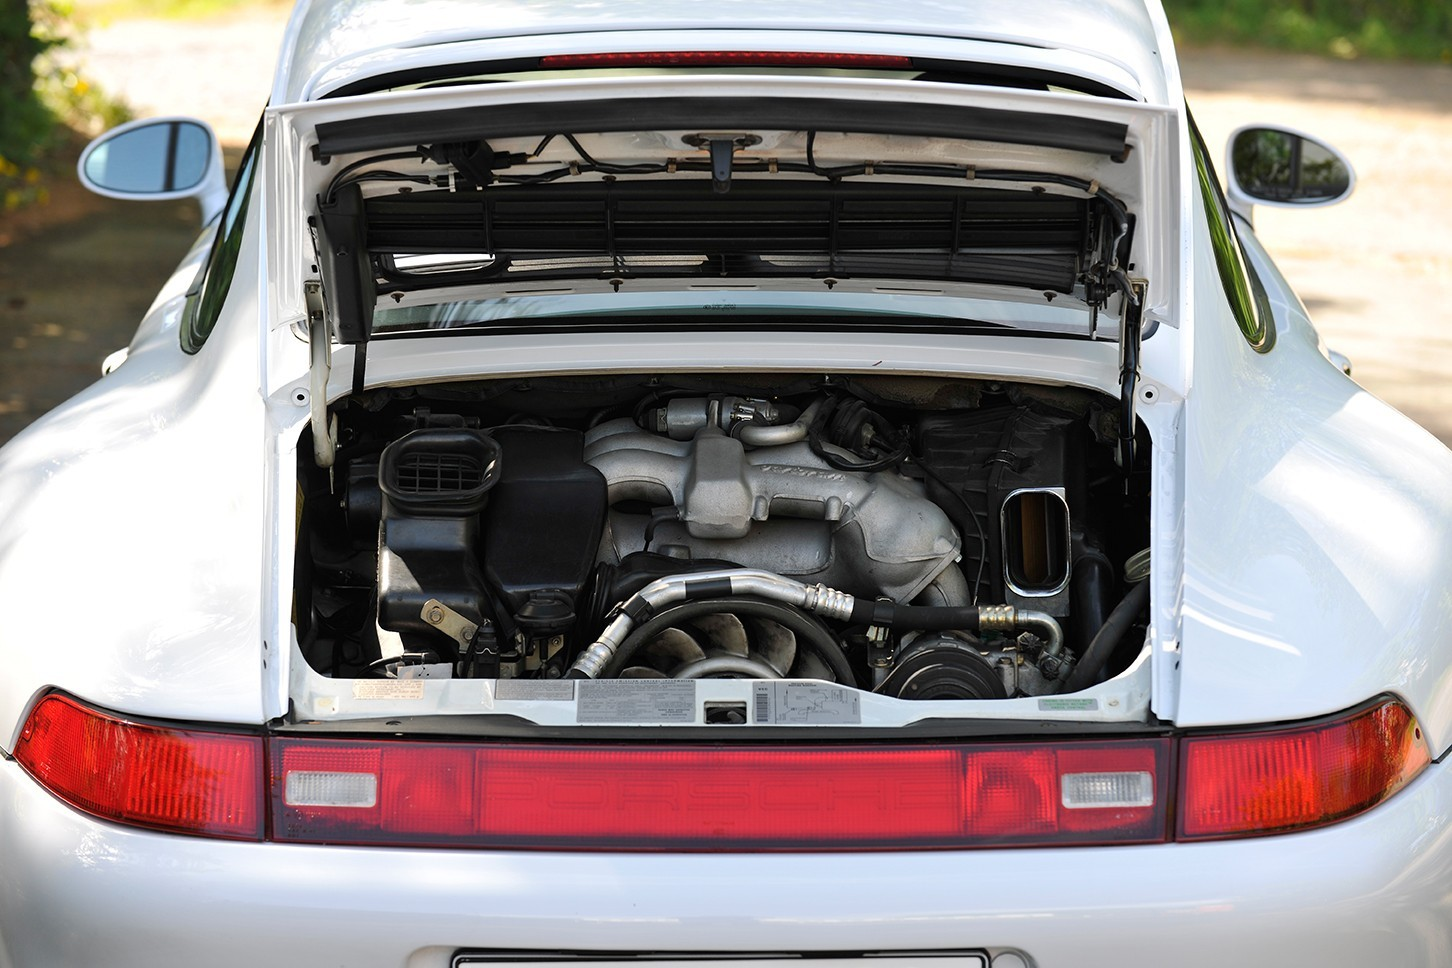 Porsche 993 Carrera engine bay Early 911 S